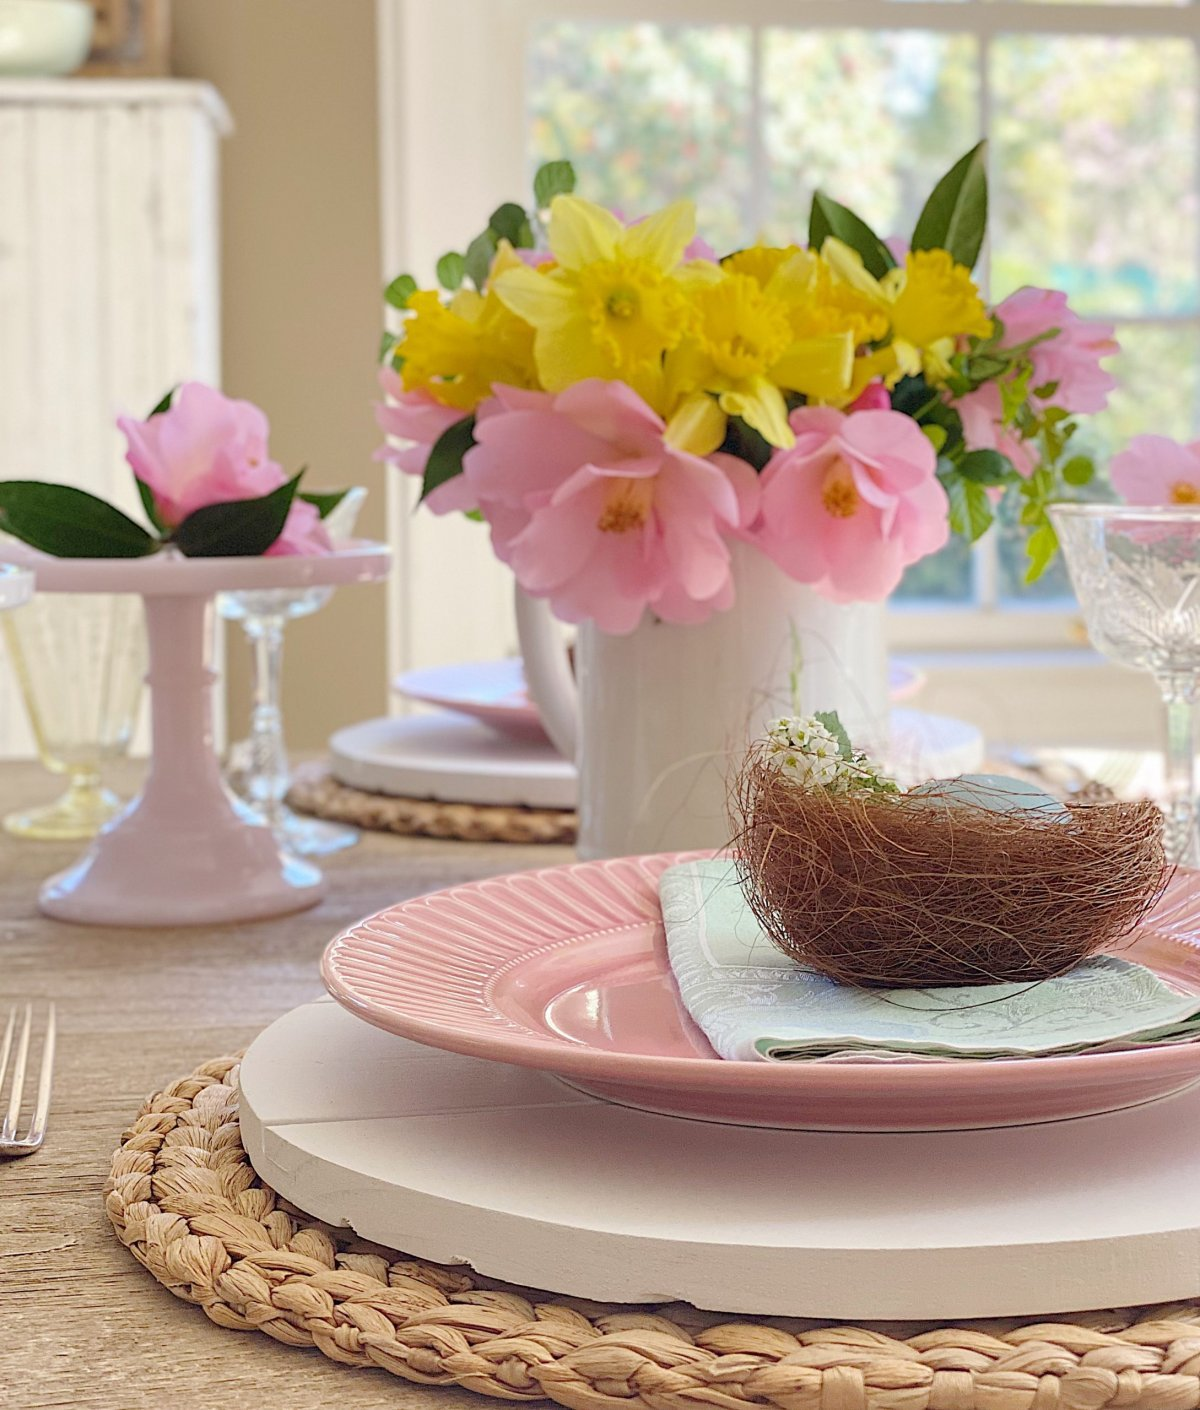 Colorful Table for Easter Dinner